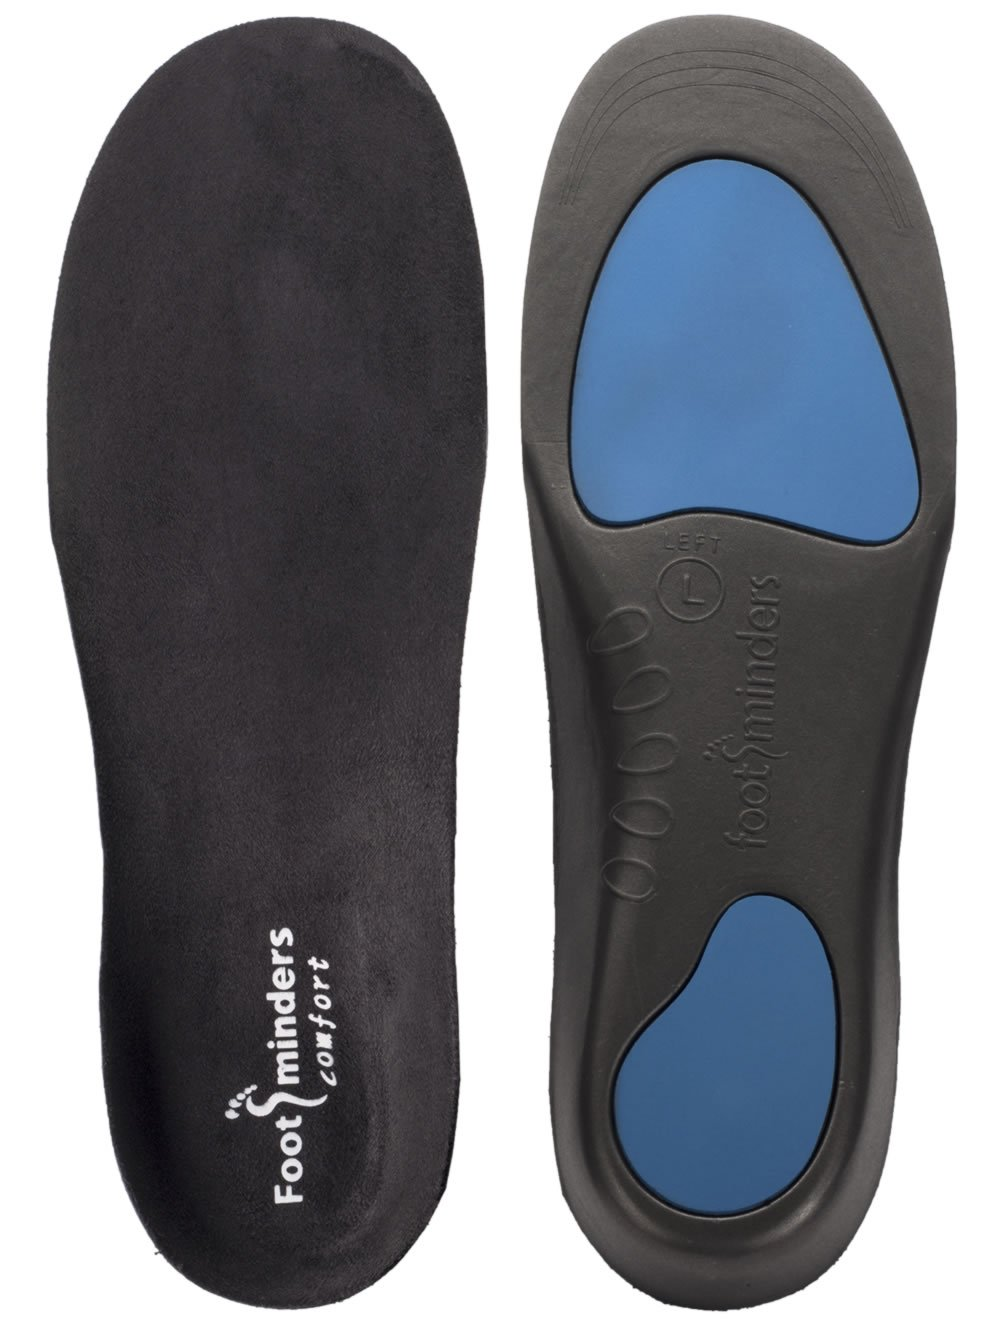 Footminders comfort orthotic arch support insoles